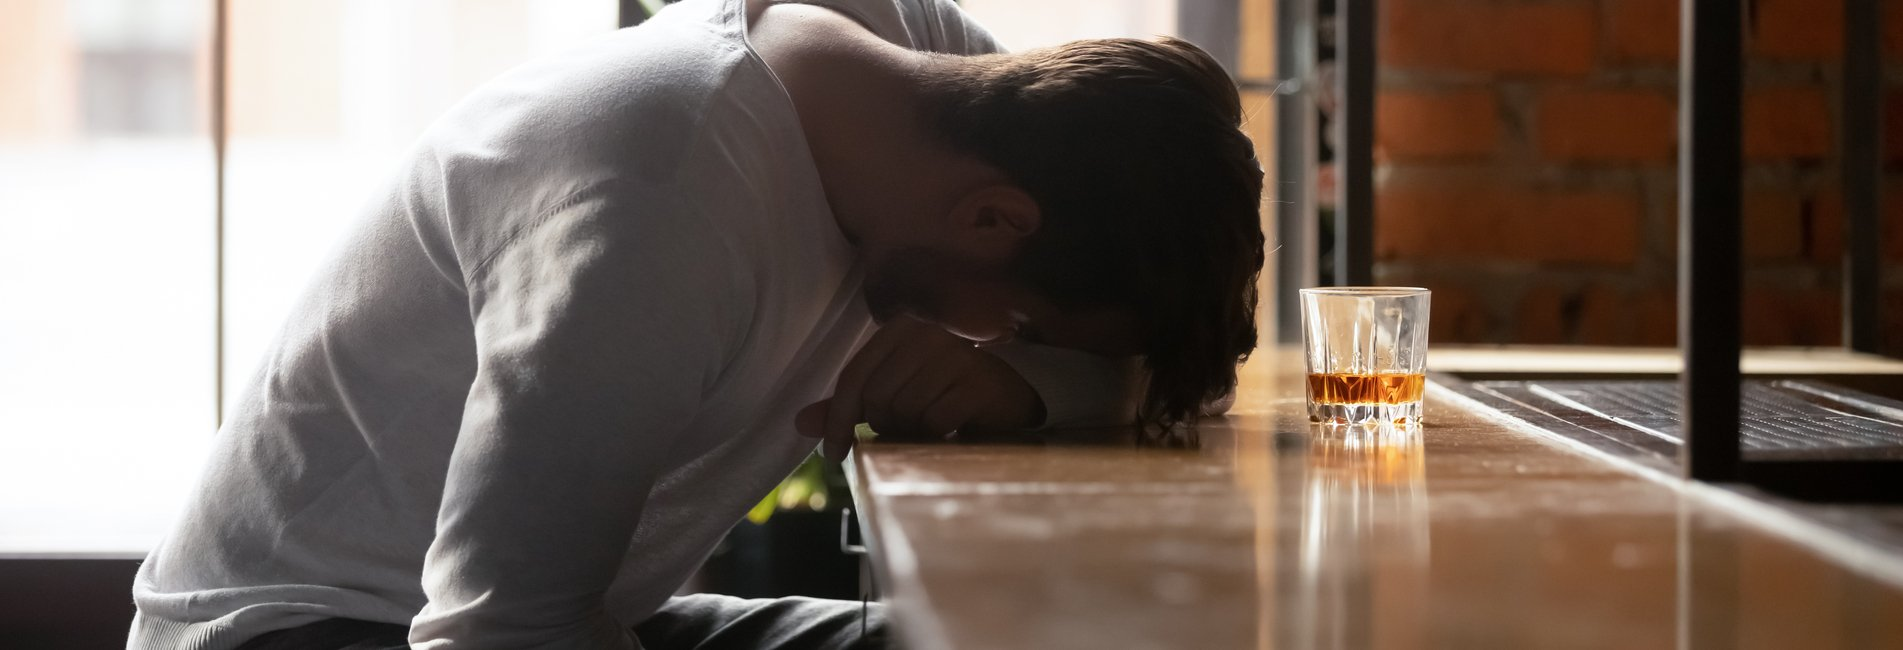 Generations and Addiction Resurgence - A depressed man struggling with alcohol addiction sits at a bar with his head down as he contemplates addiction treatment.